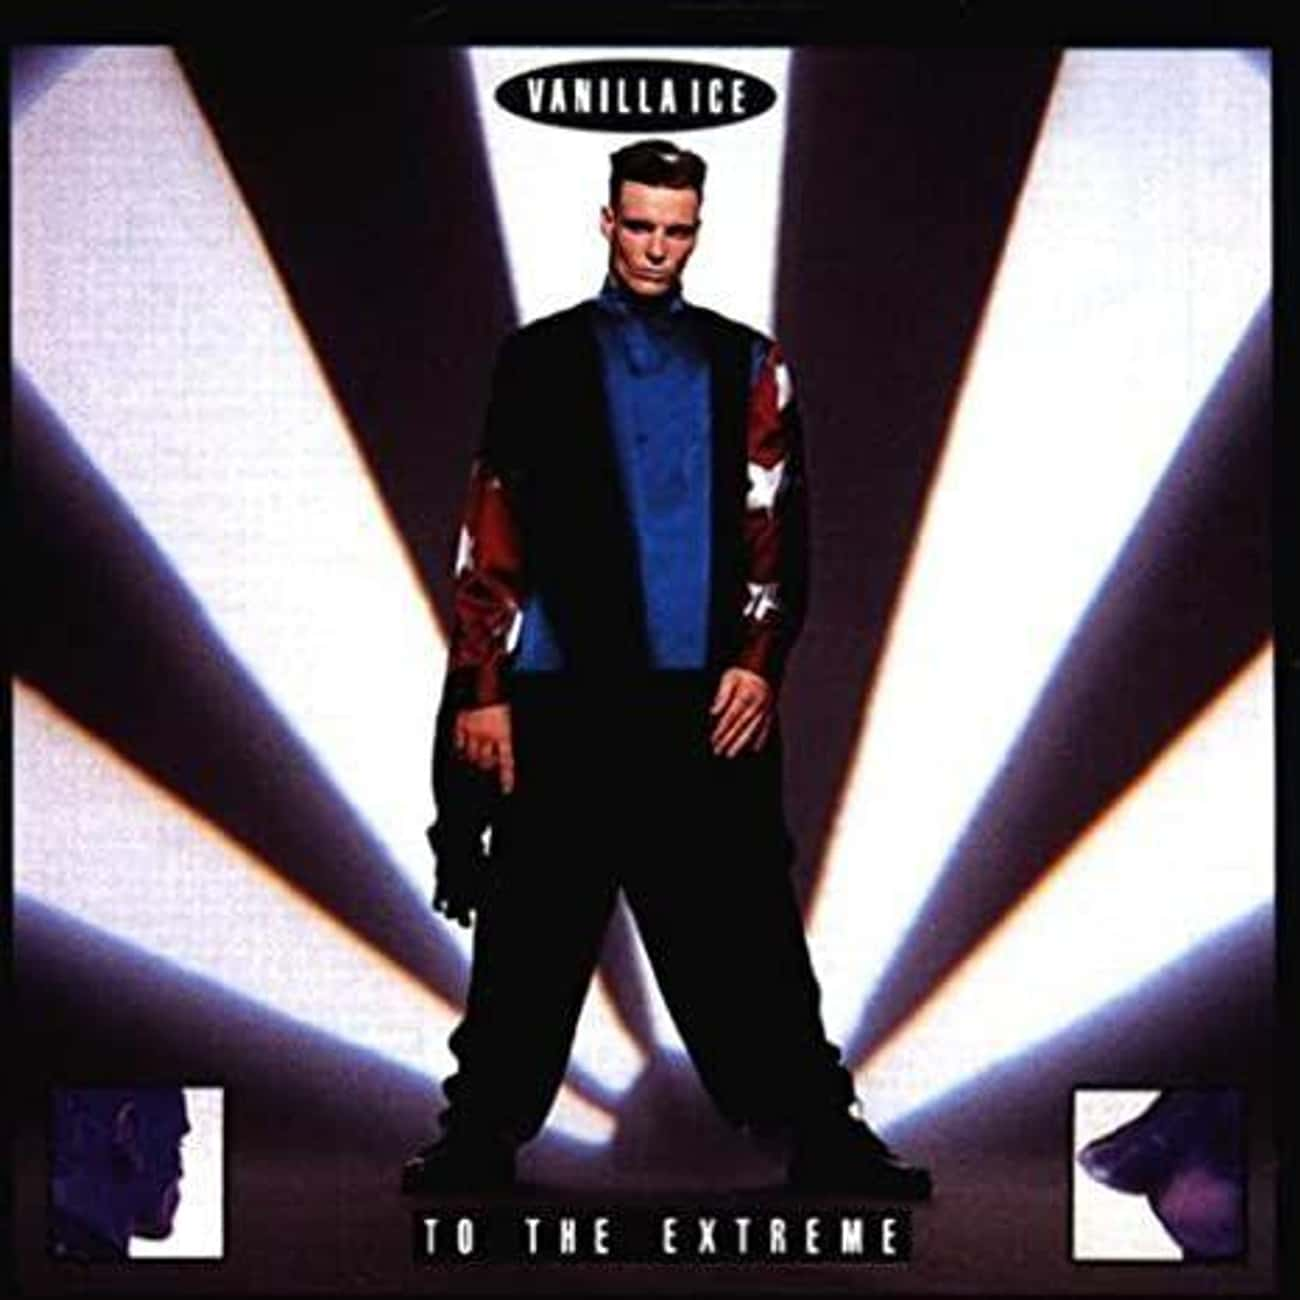 'To the Extreme' - Vanilla Ice is listed (or ranked) 3 on the list What '90s CDs Are You Most Embarrassed You Owned?